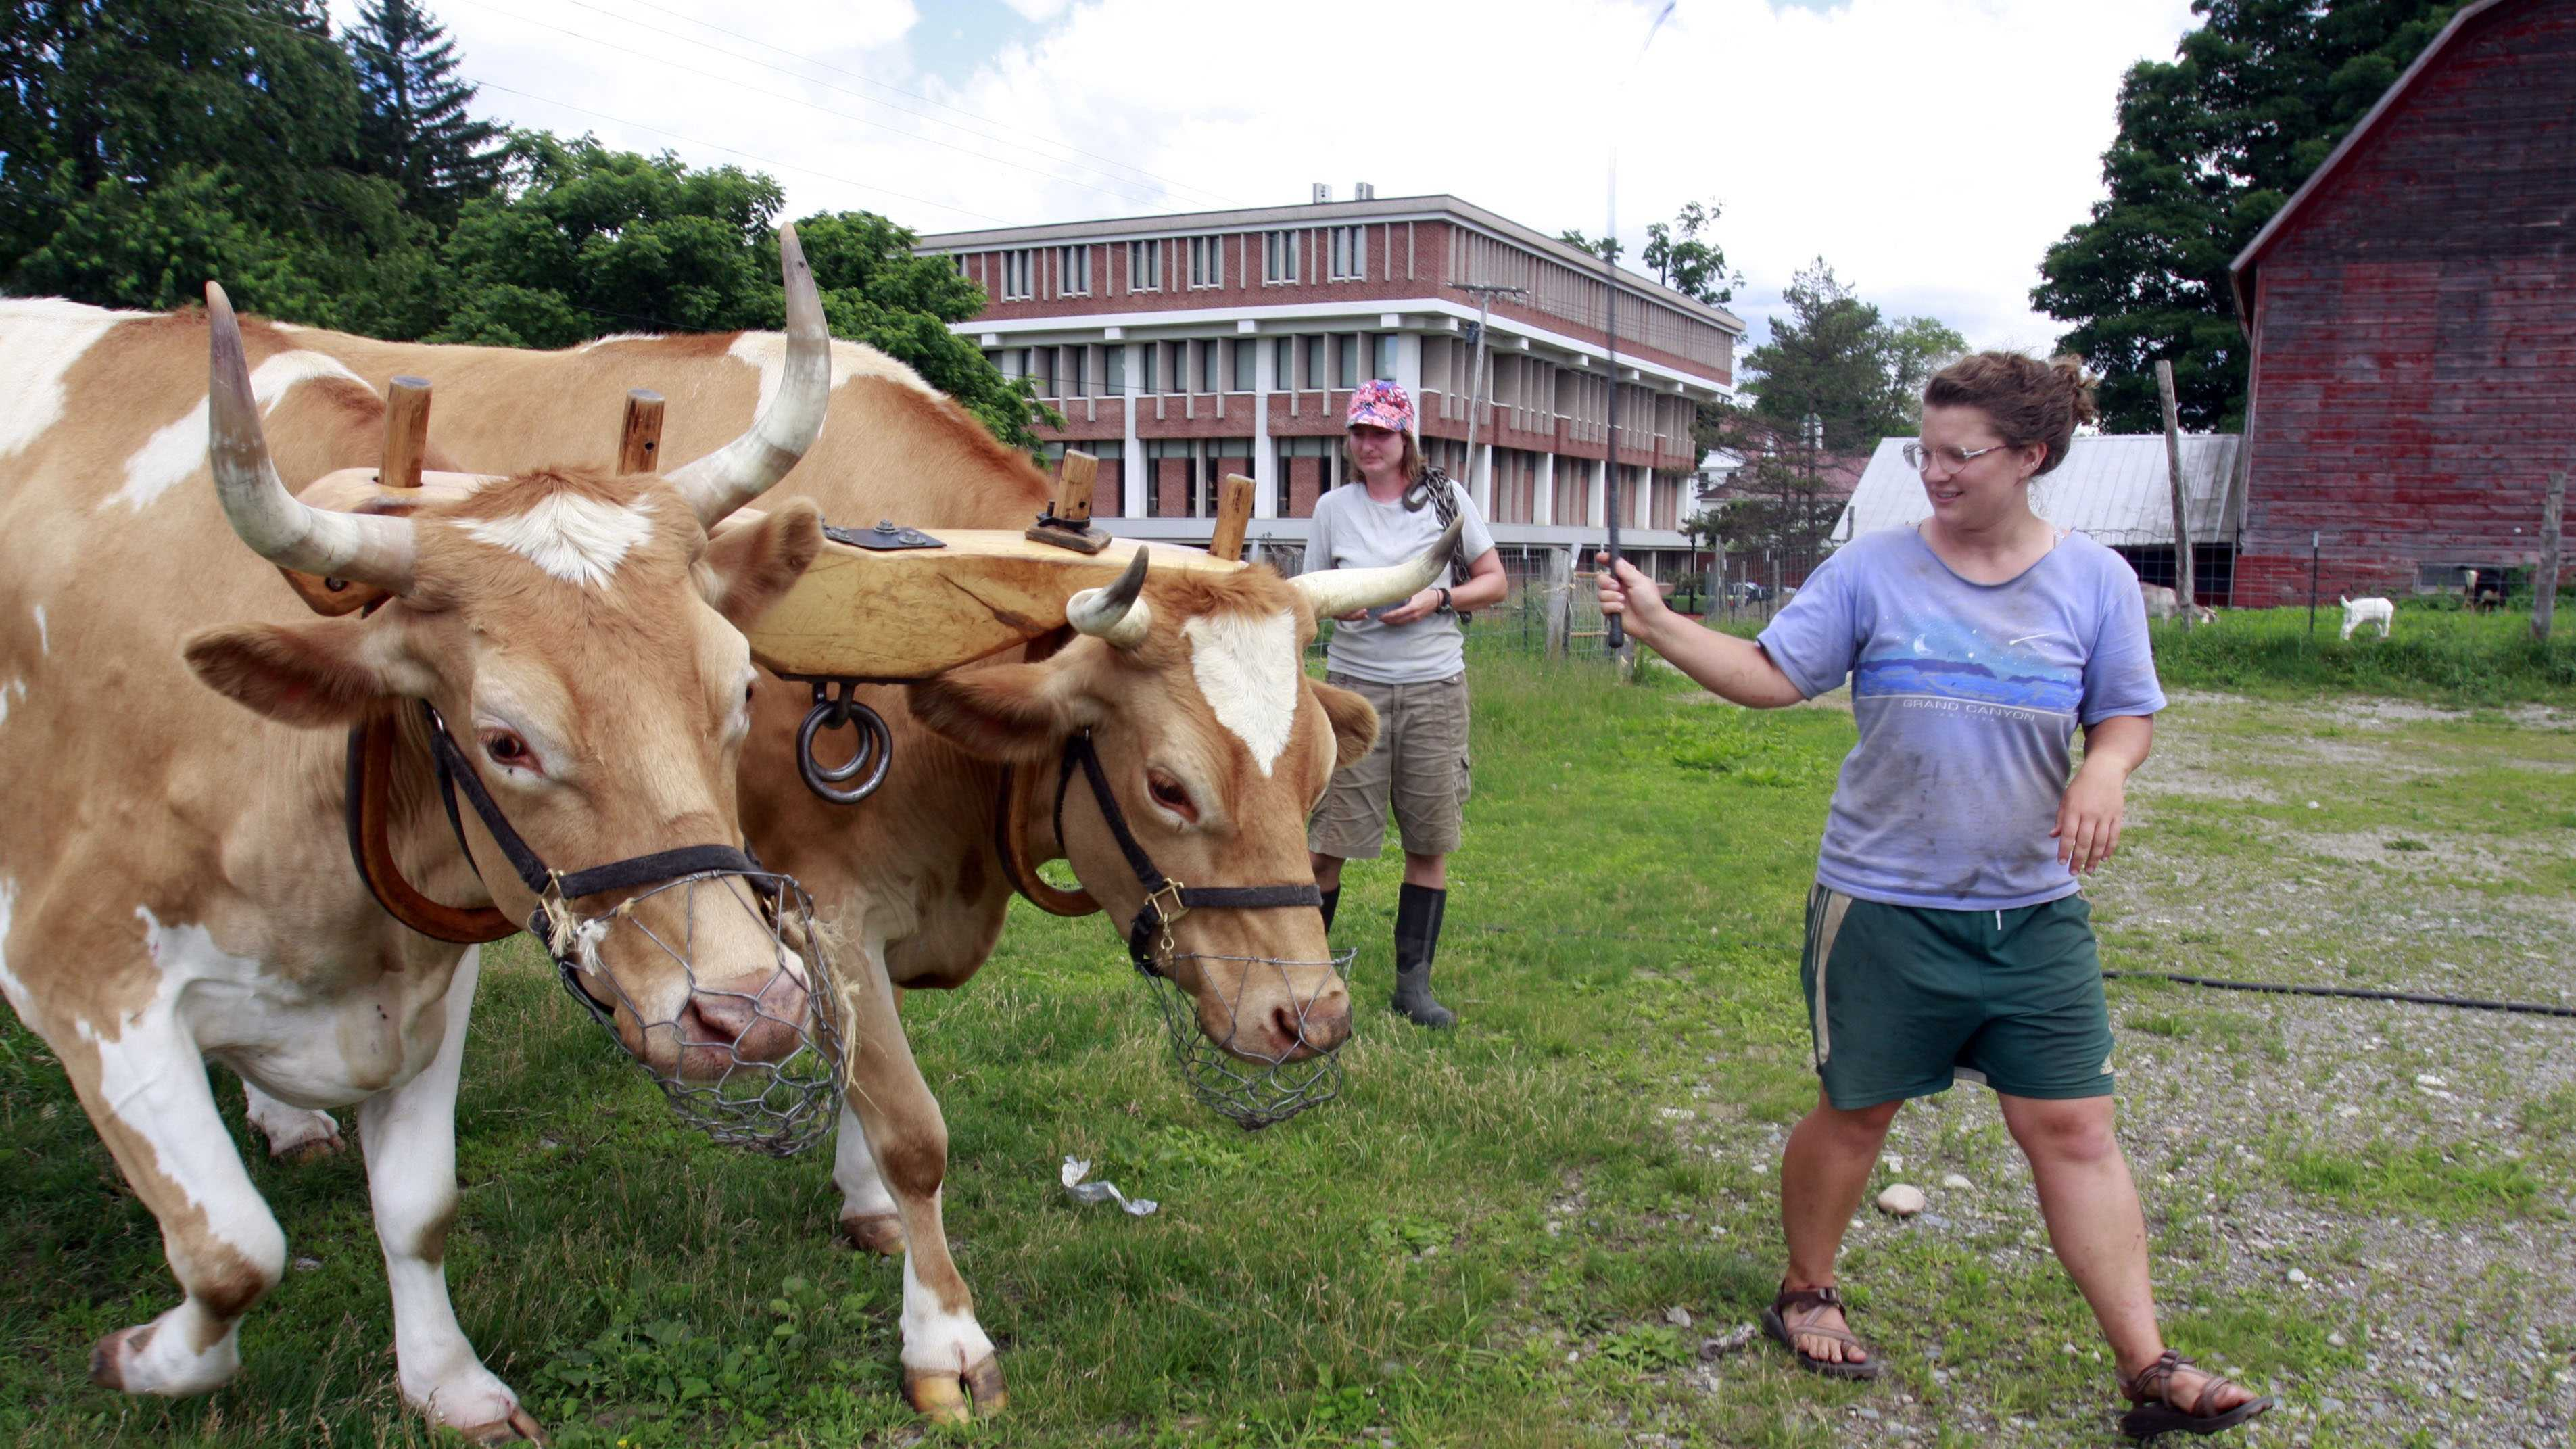 In this June 24, 2009 file photo, student worker Anastasia Gazynski, right, a Green Mountain College senior, leads oxen Bill and Lou, as production manager Lisa Veniscofsky, center, looks on while heading out to work in the field on the Green Mountain College campus farm in Poultney, Vt. The days are numbered for the two oxen that have worked the fields at Vermont's Green Mountain College farm for more than a decade. The Poultney college says the oxen are being retired because of injury and will be processed into beef products to be served in the college dining hall.